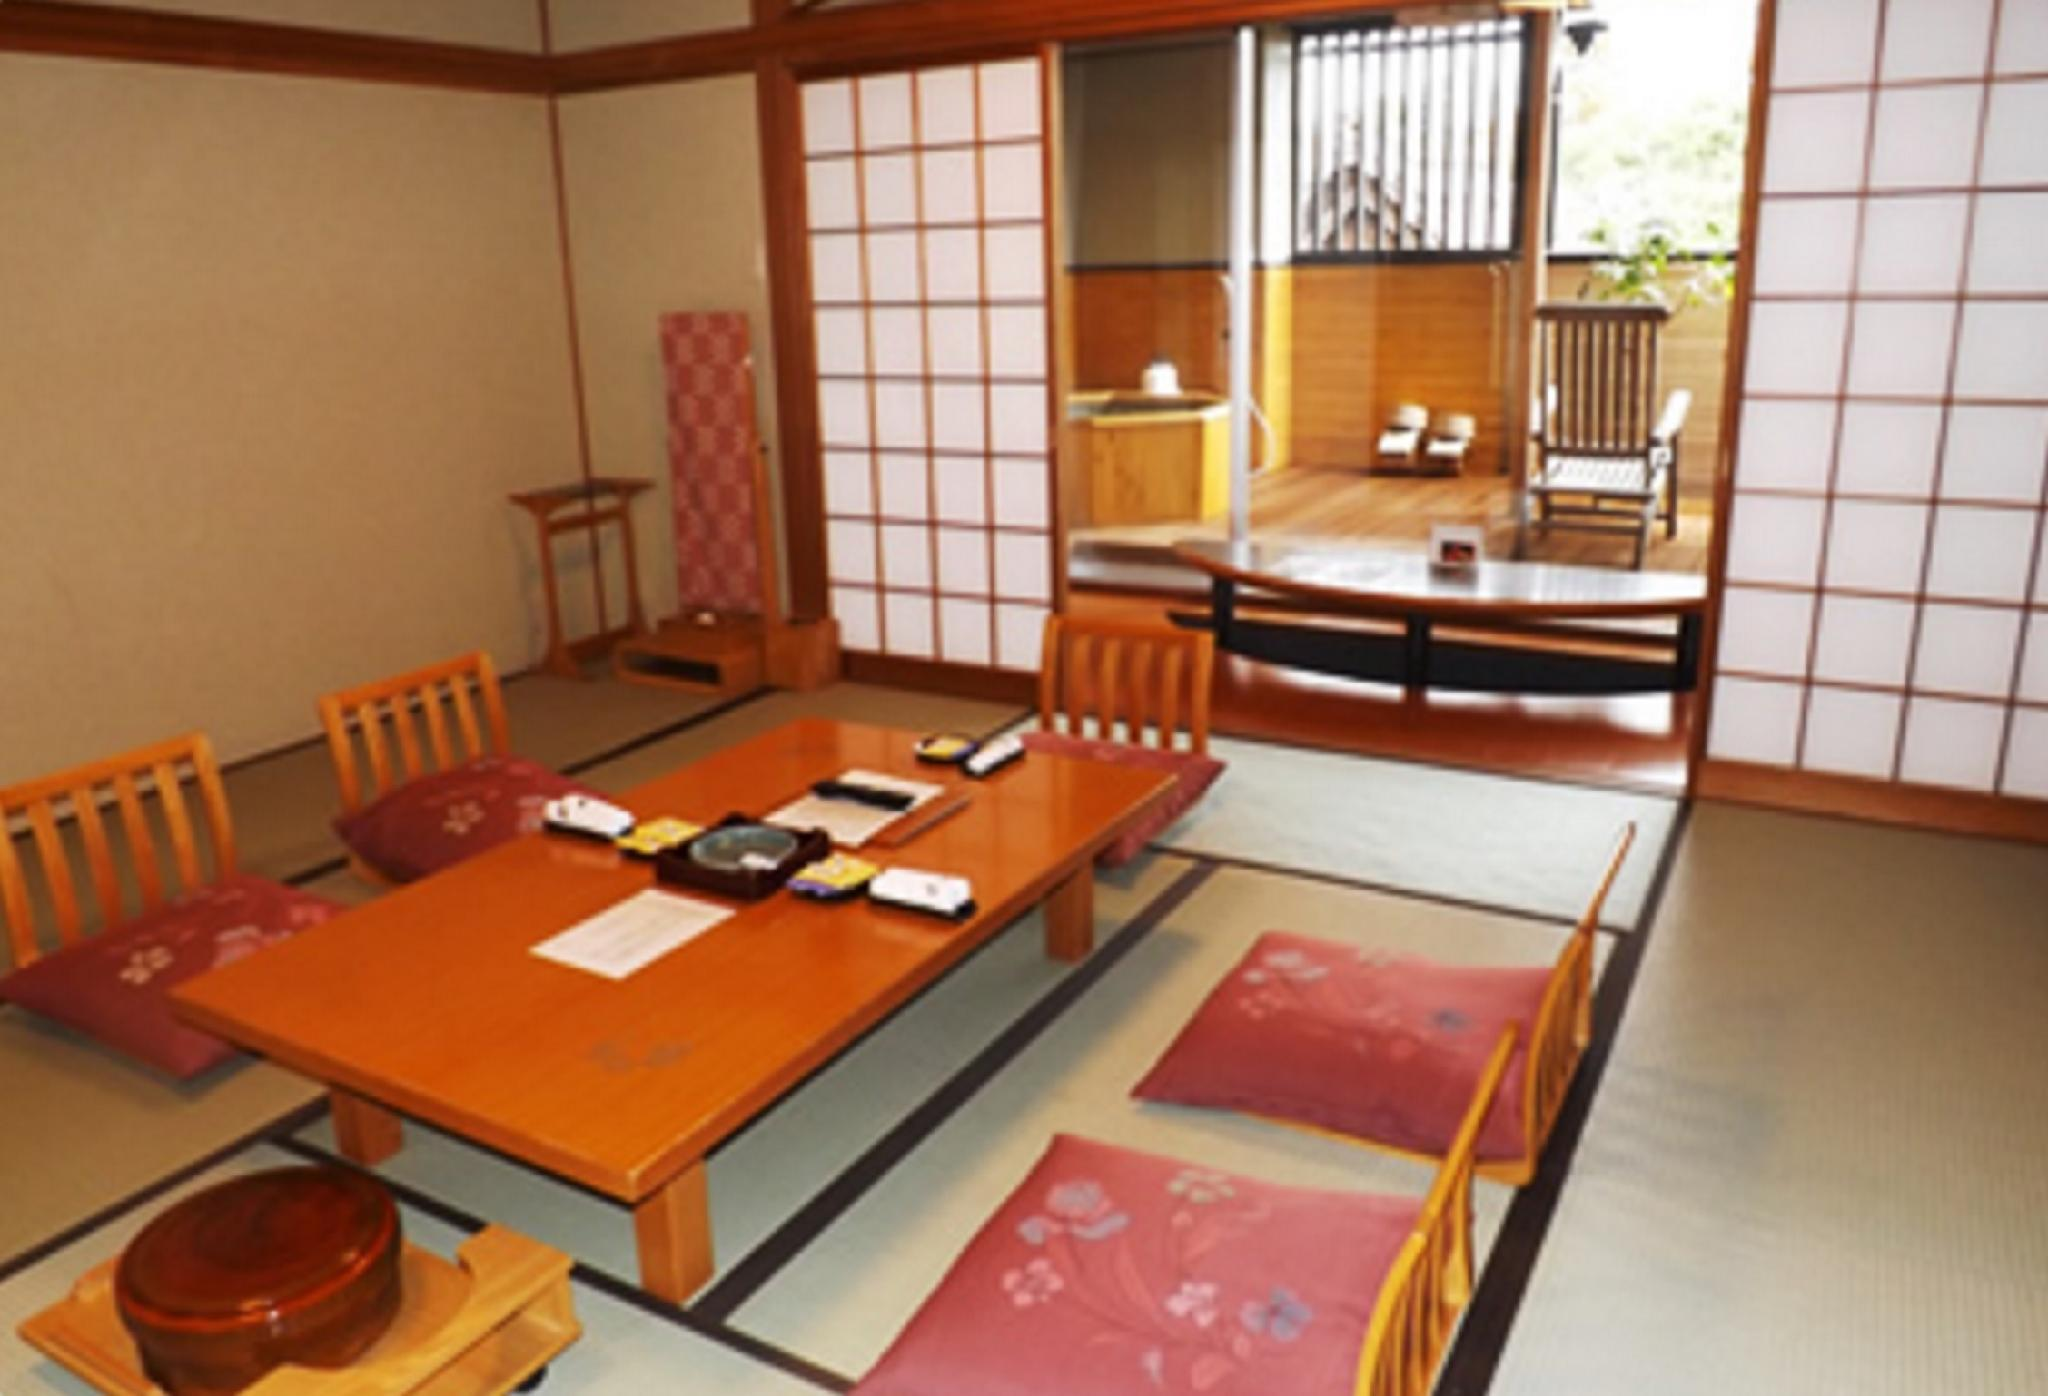 和室 スタンダードルーム 露天風呂付 (Japanese-Style Standard Room with Open-Air Bath)